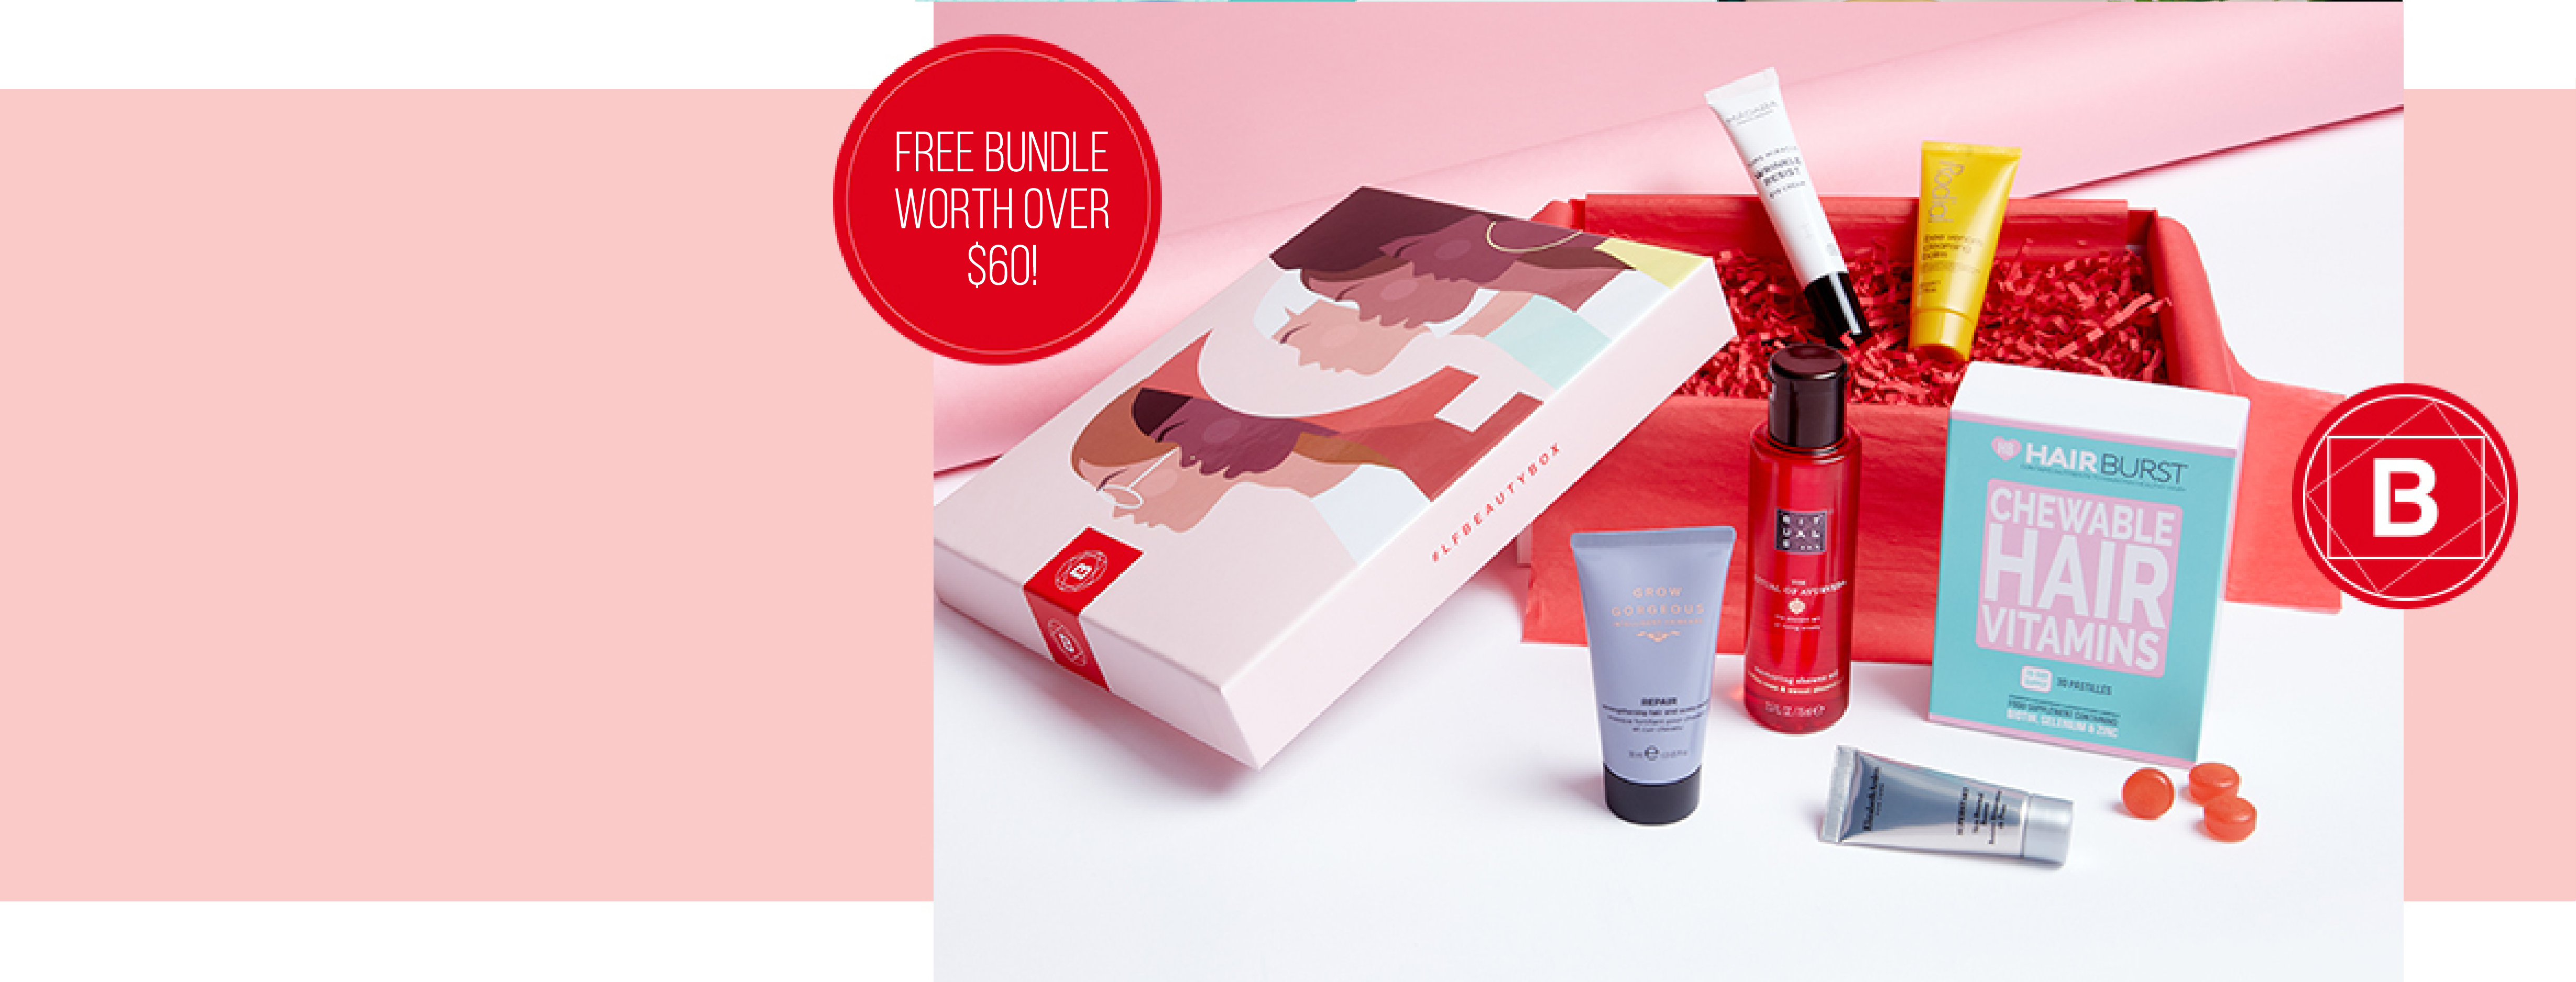 <b>Here's to strong women...</b><br><br>This March, <b>feel strong, confident and beautiful</b> with the help of our Unconstricted Edition Beauty Box.<br><br>With a worth of over $95, subscribe today and get yours from just $19. Plus, receive a Mystery Gift worth over $60 when you subscribe for 6 or 12 months.